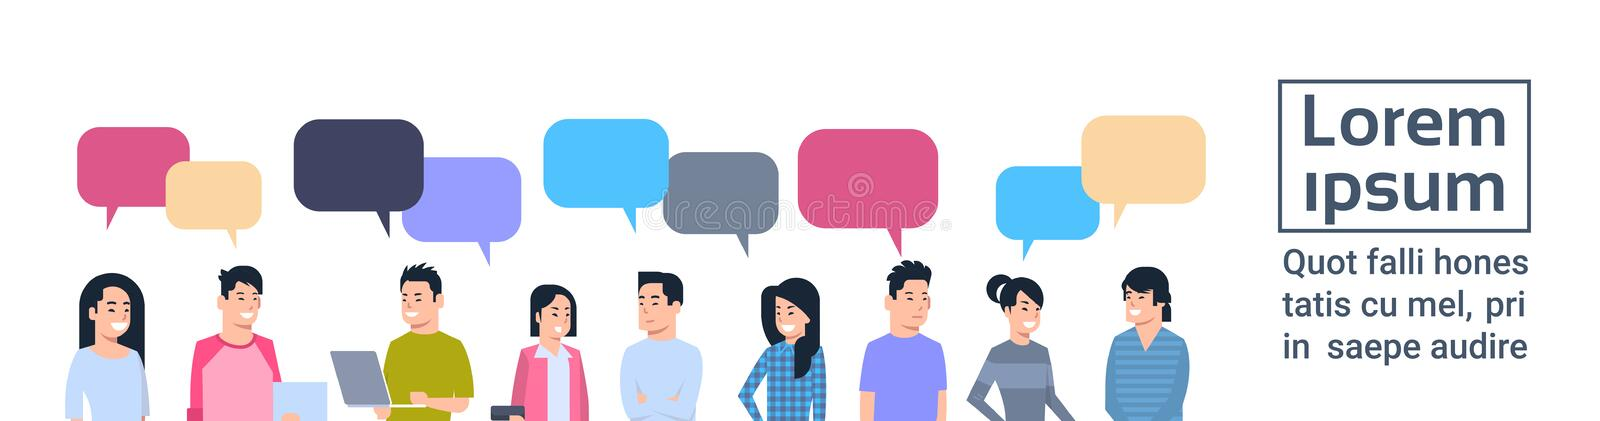 Young Asian Men And Women Group With Chat Bubbles Chinese Or Japanese Male And Female People Full Length Communication. Concept Vector Illustration vector illustration